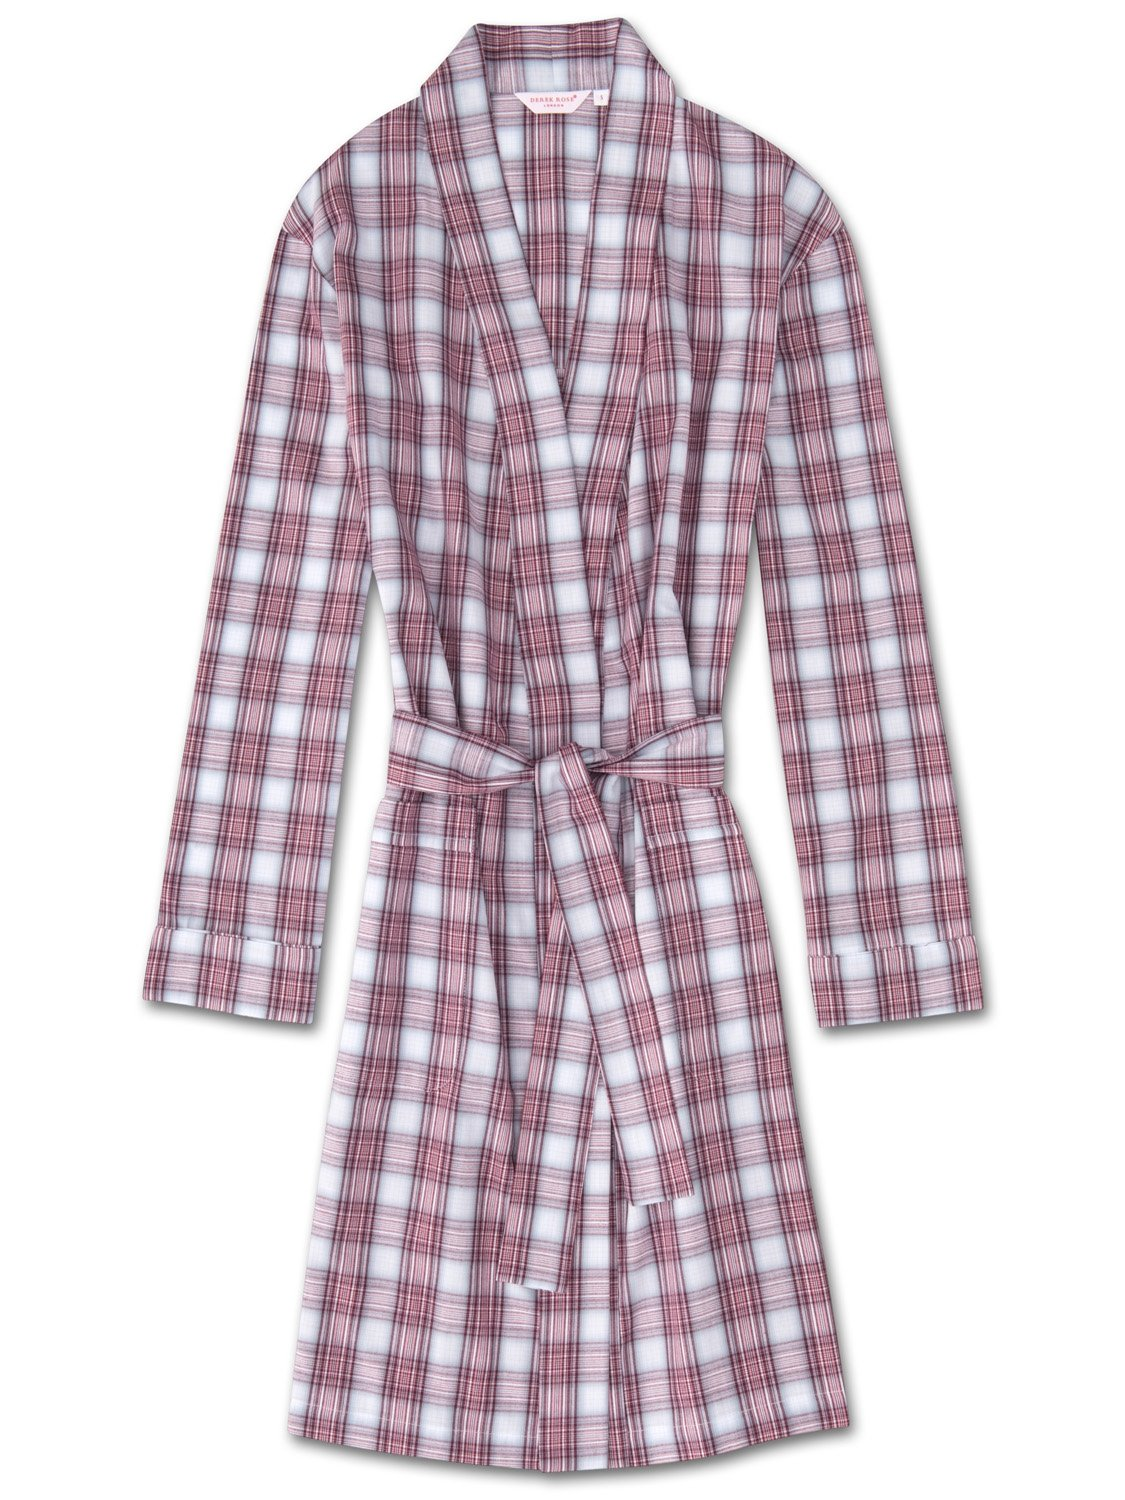 Women's Dressing Gown Ranga 34 Brushed Cotton Check Multi